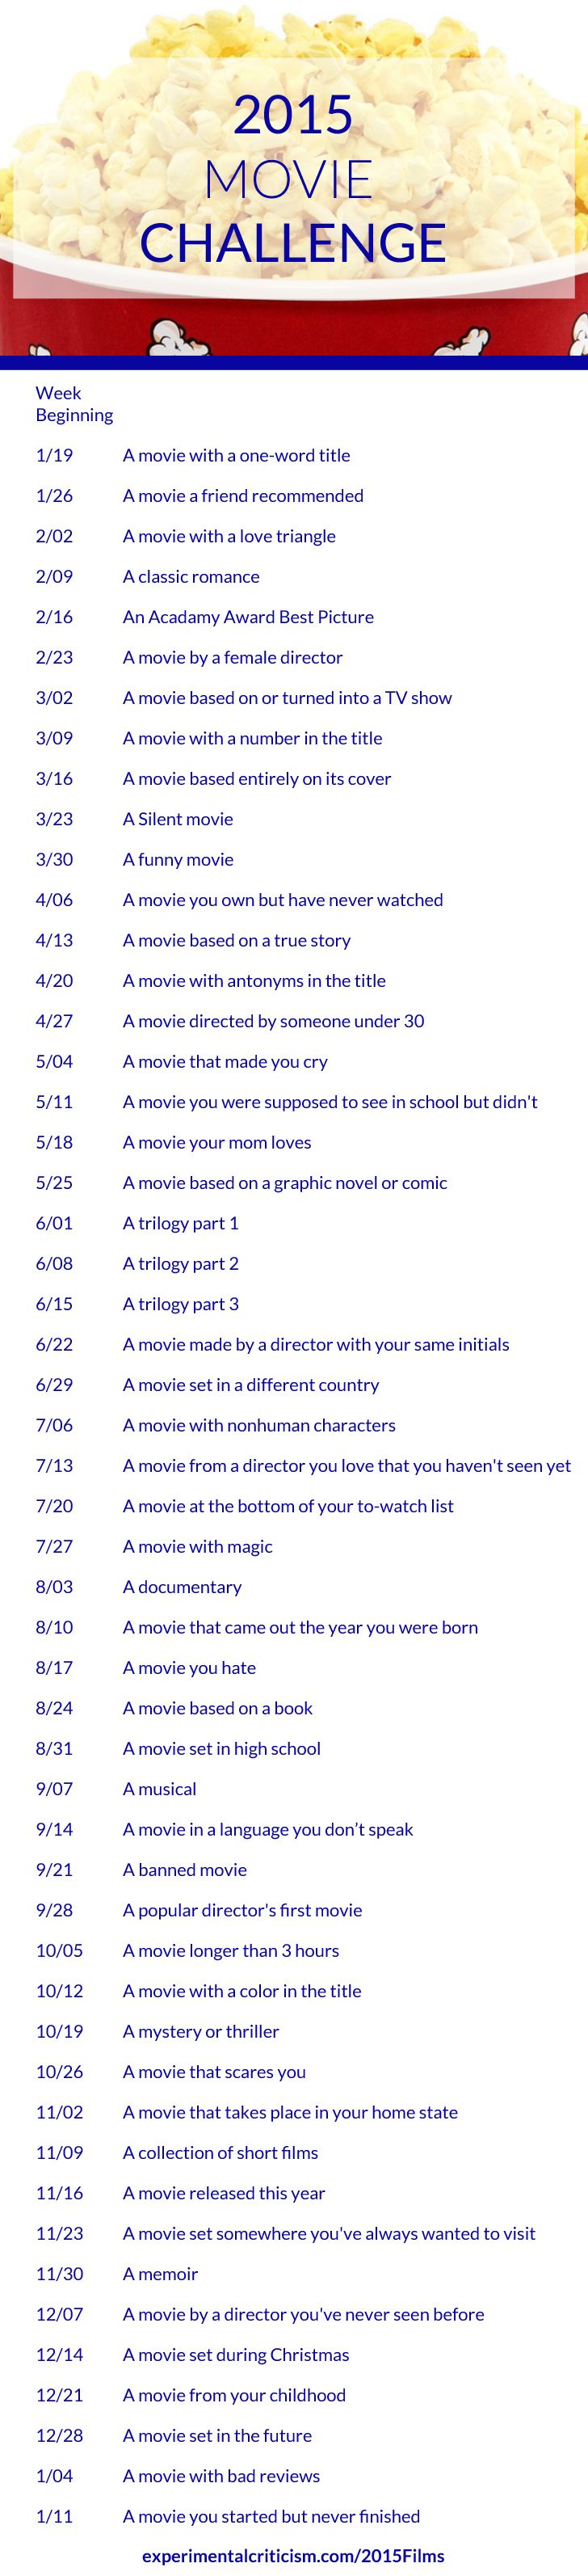 Movie Challenge 2015! This is a challenge for people who love movies, but do not have the time to watch them. The goal is for everyone to watch a movie on a theme every week and discuss the films. By the end of the challenge we will have watched 52 films.